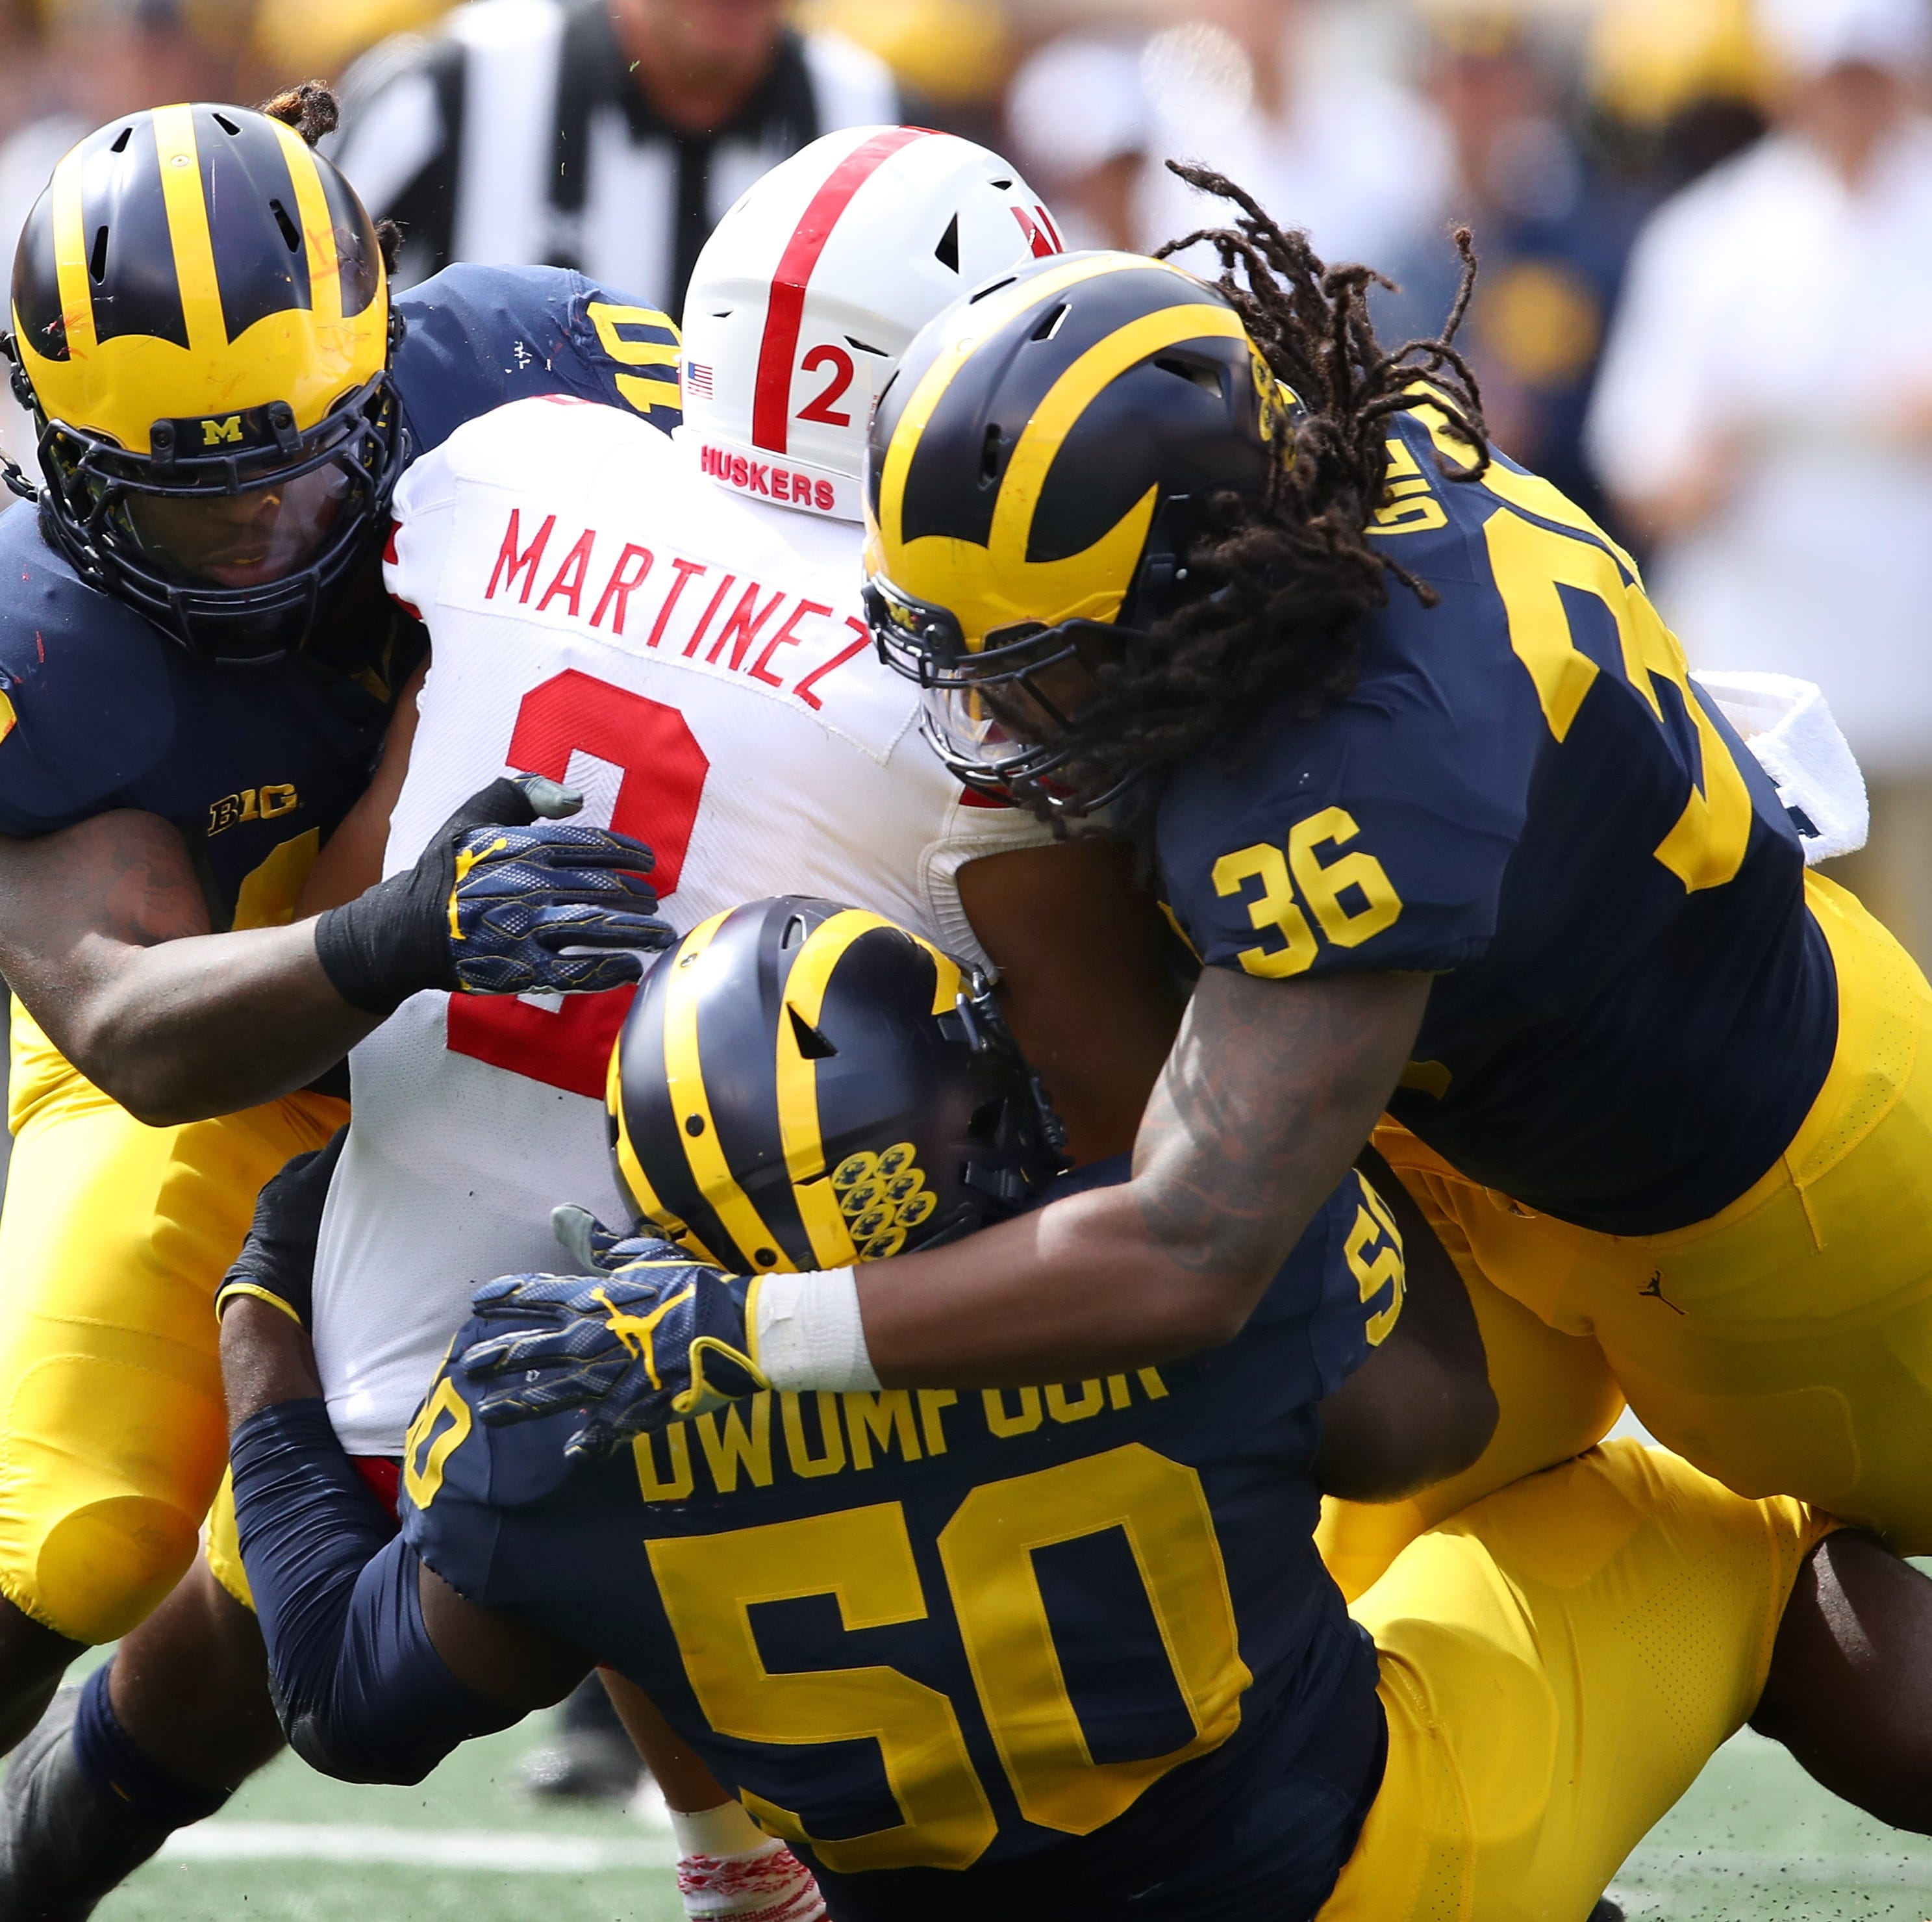 Michigan finally gives reason to believe in blowout of Nebraska